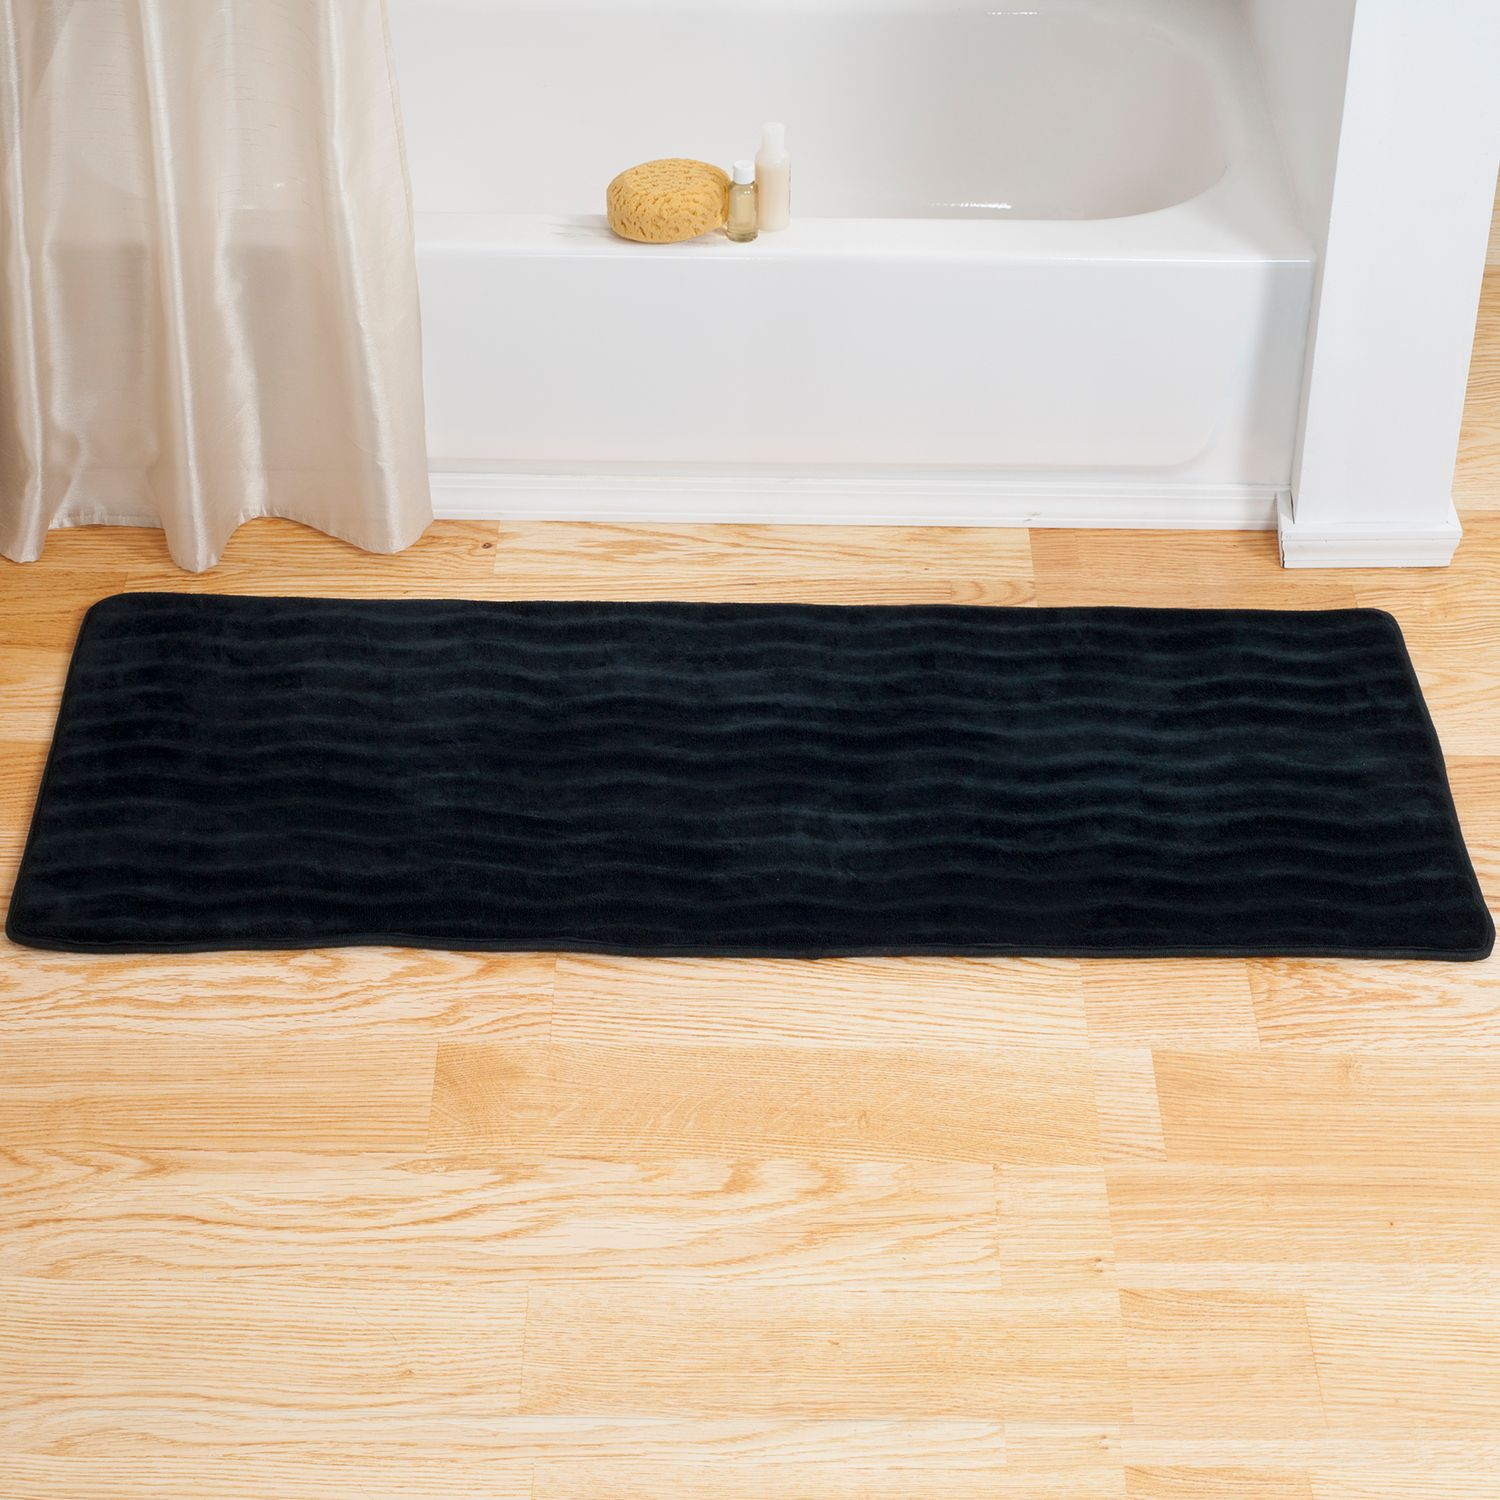 Nice Portsmouth Home Memory Foam Long Bath Rug Mat